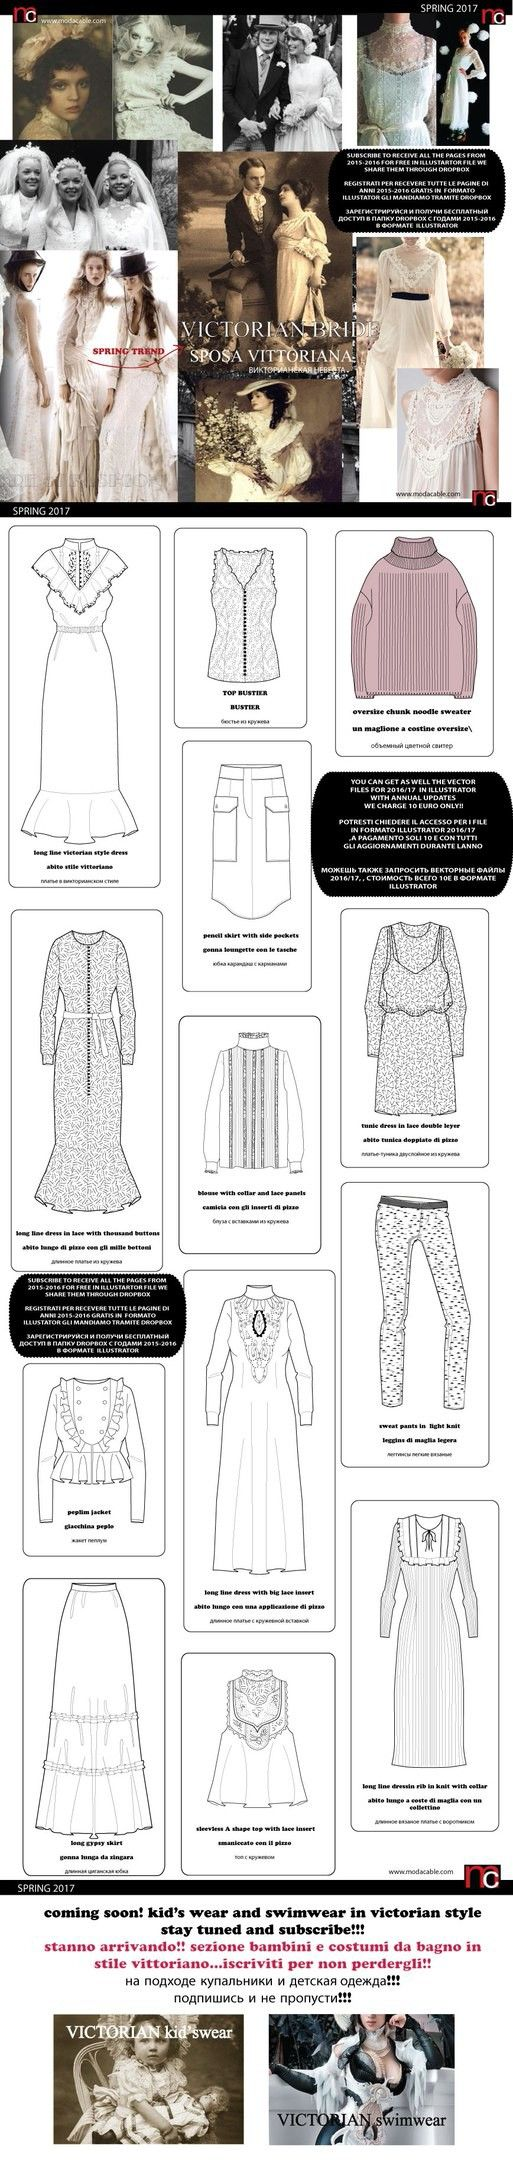 Victorian-inspired Capsule Wardrobe. D's note: interesting way to bring historic inspirations into current wardrobe